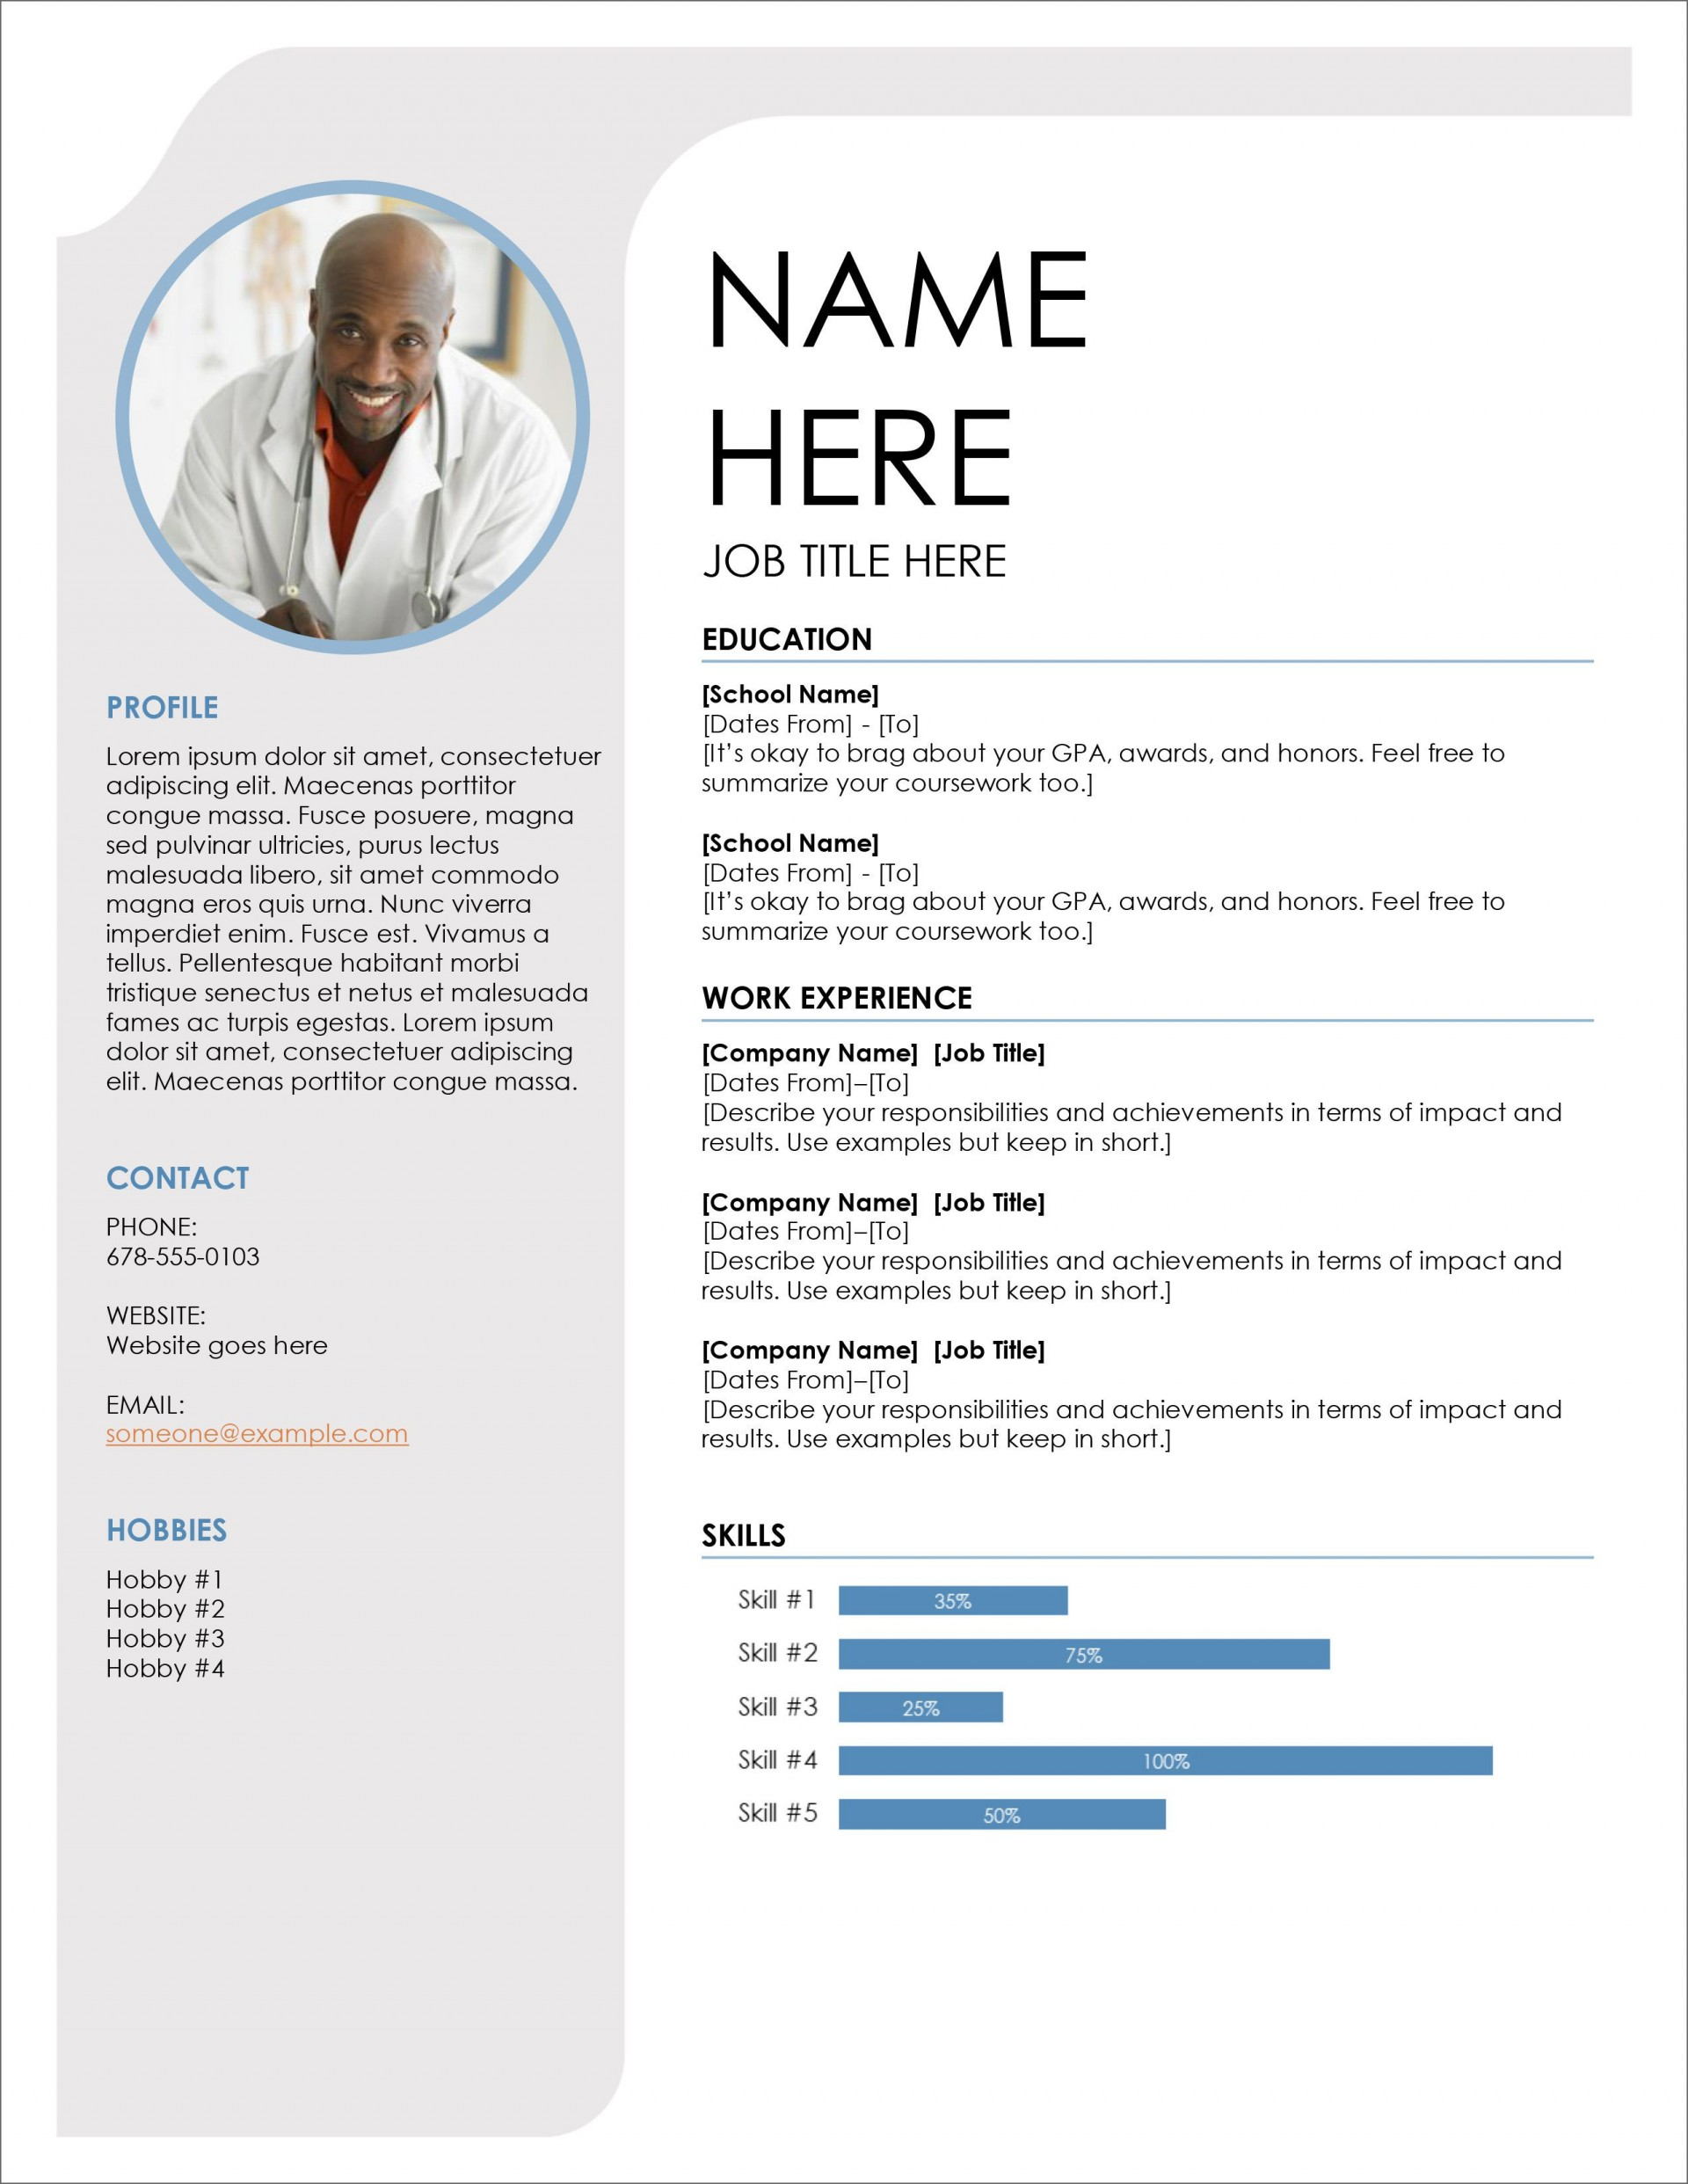 005 Surprising Download Resume Sample In Word Format High Resolution  Driver Cv Free Best Template1920